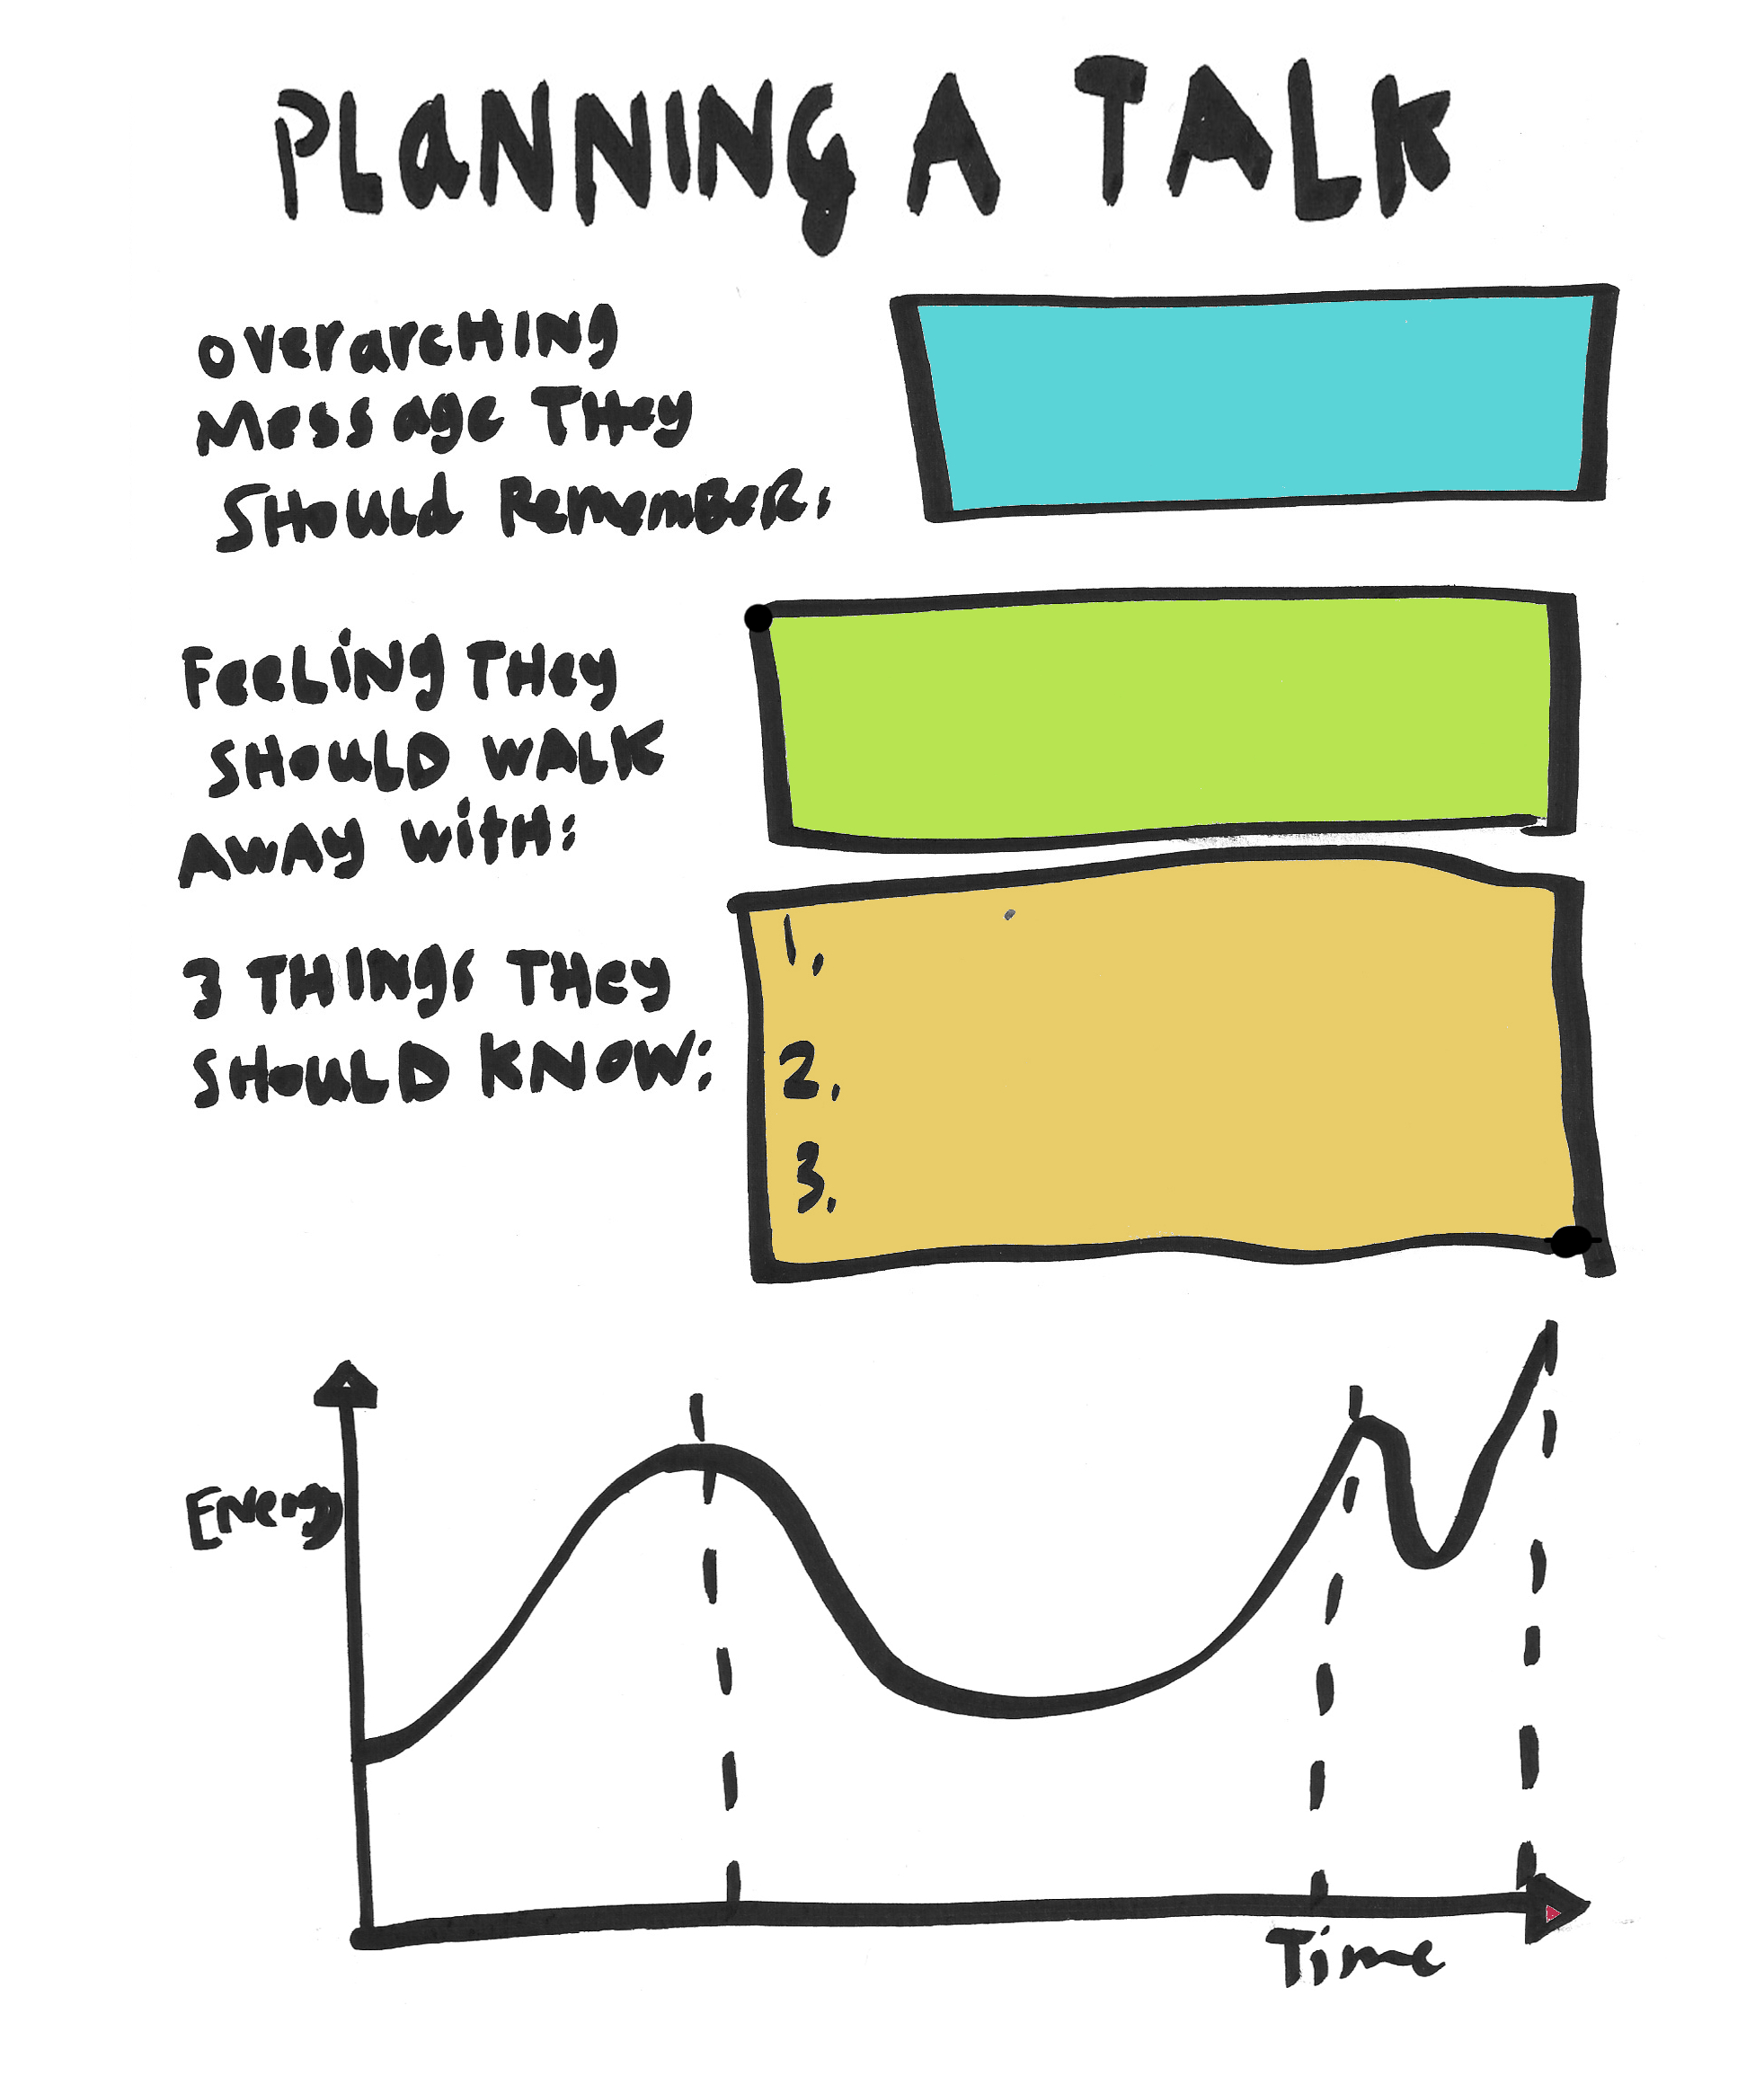 A visual worksheet for planning a talk